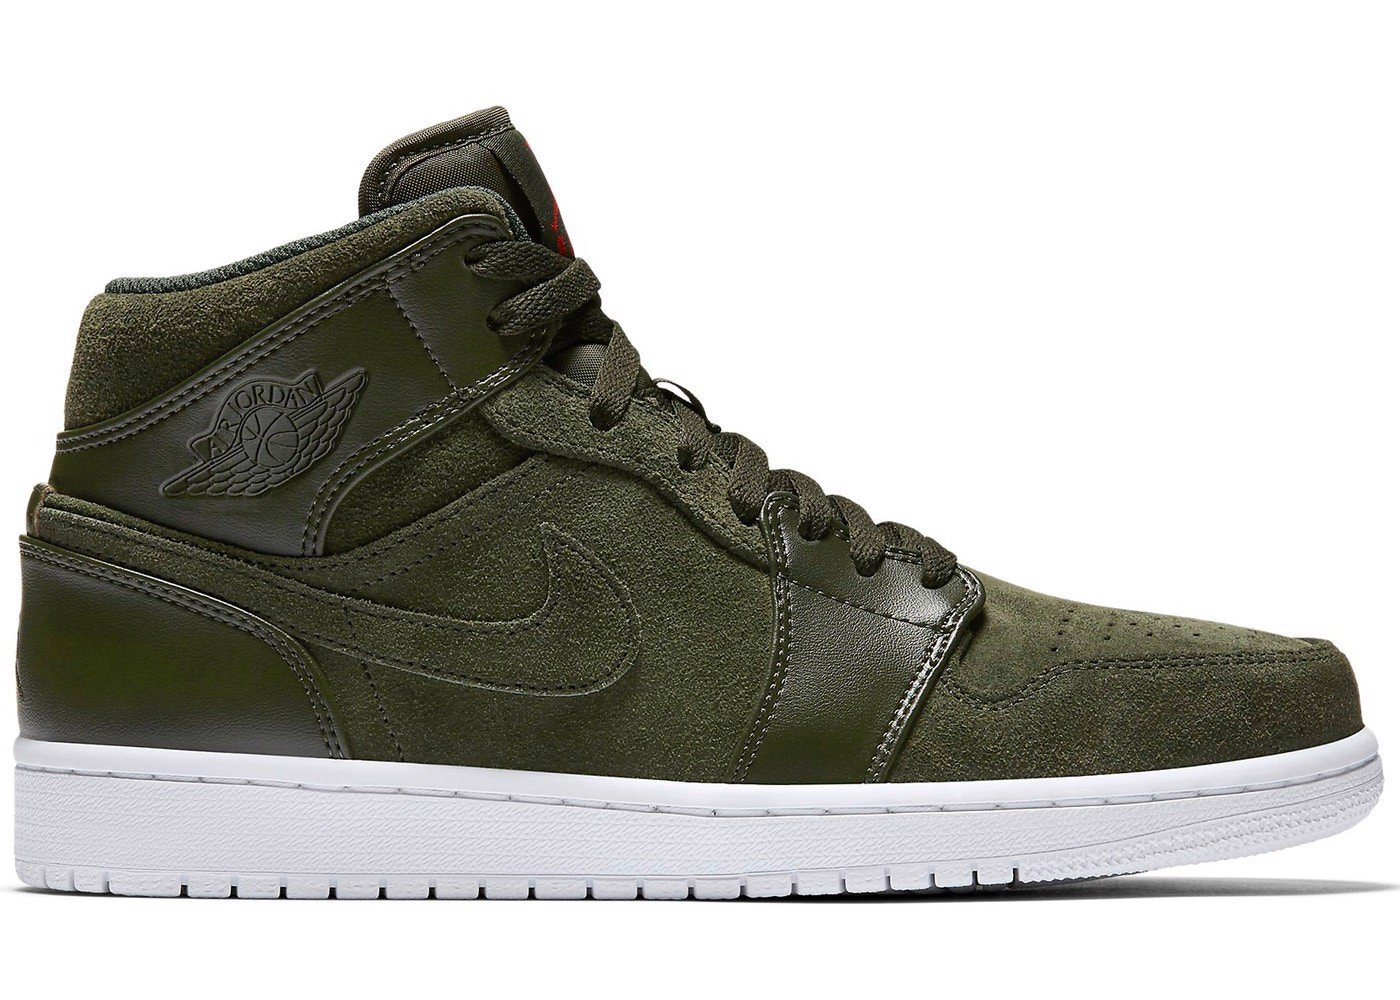 Nike Air Jordan 1 Retro Mid Sequoia 554724-302